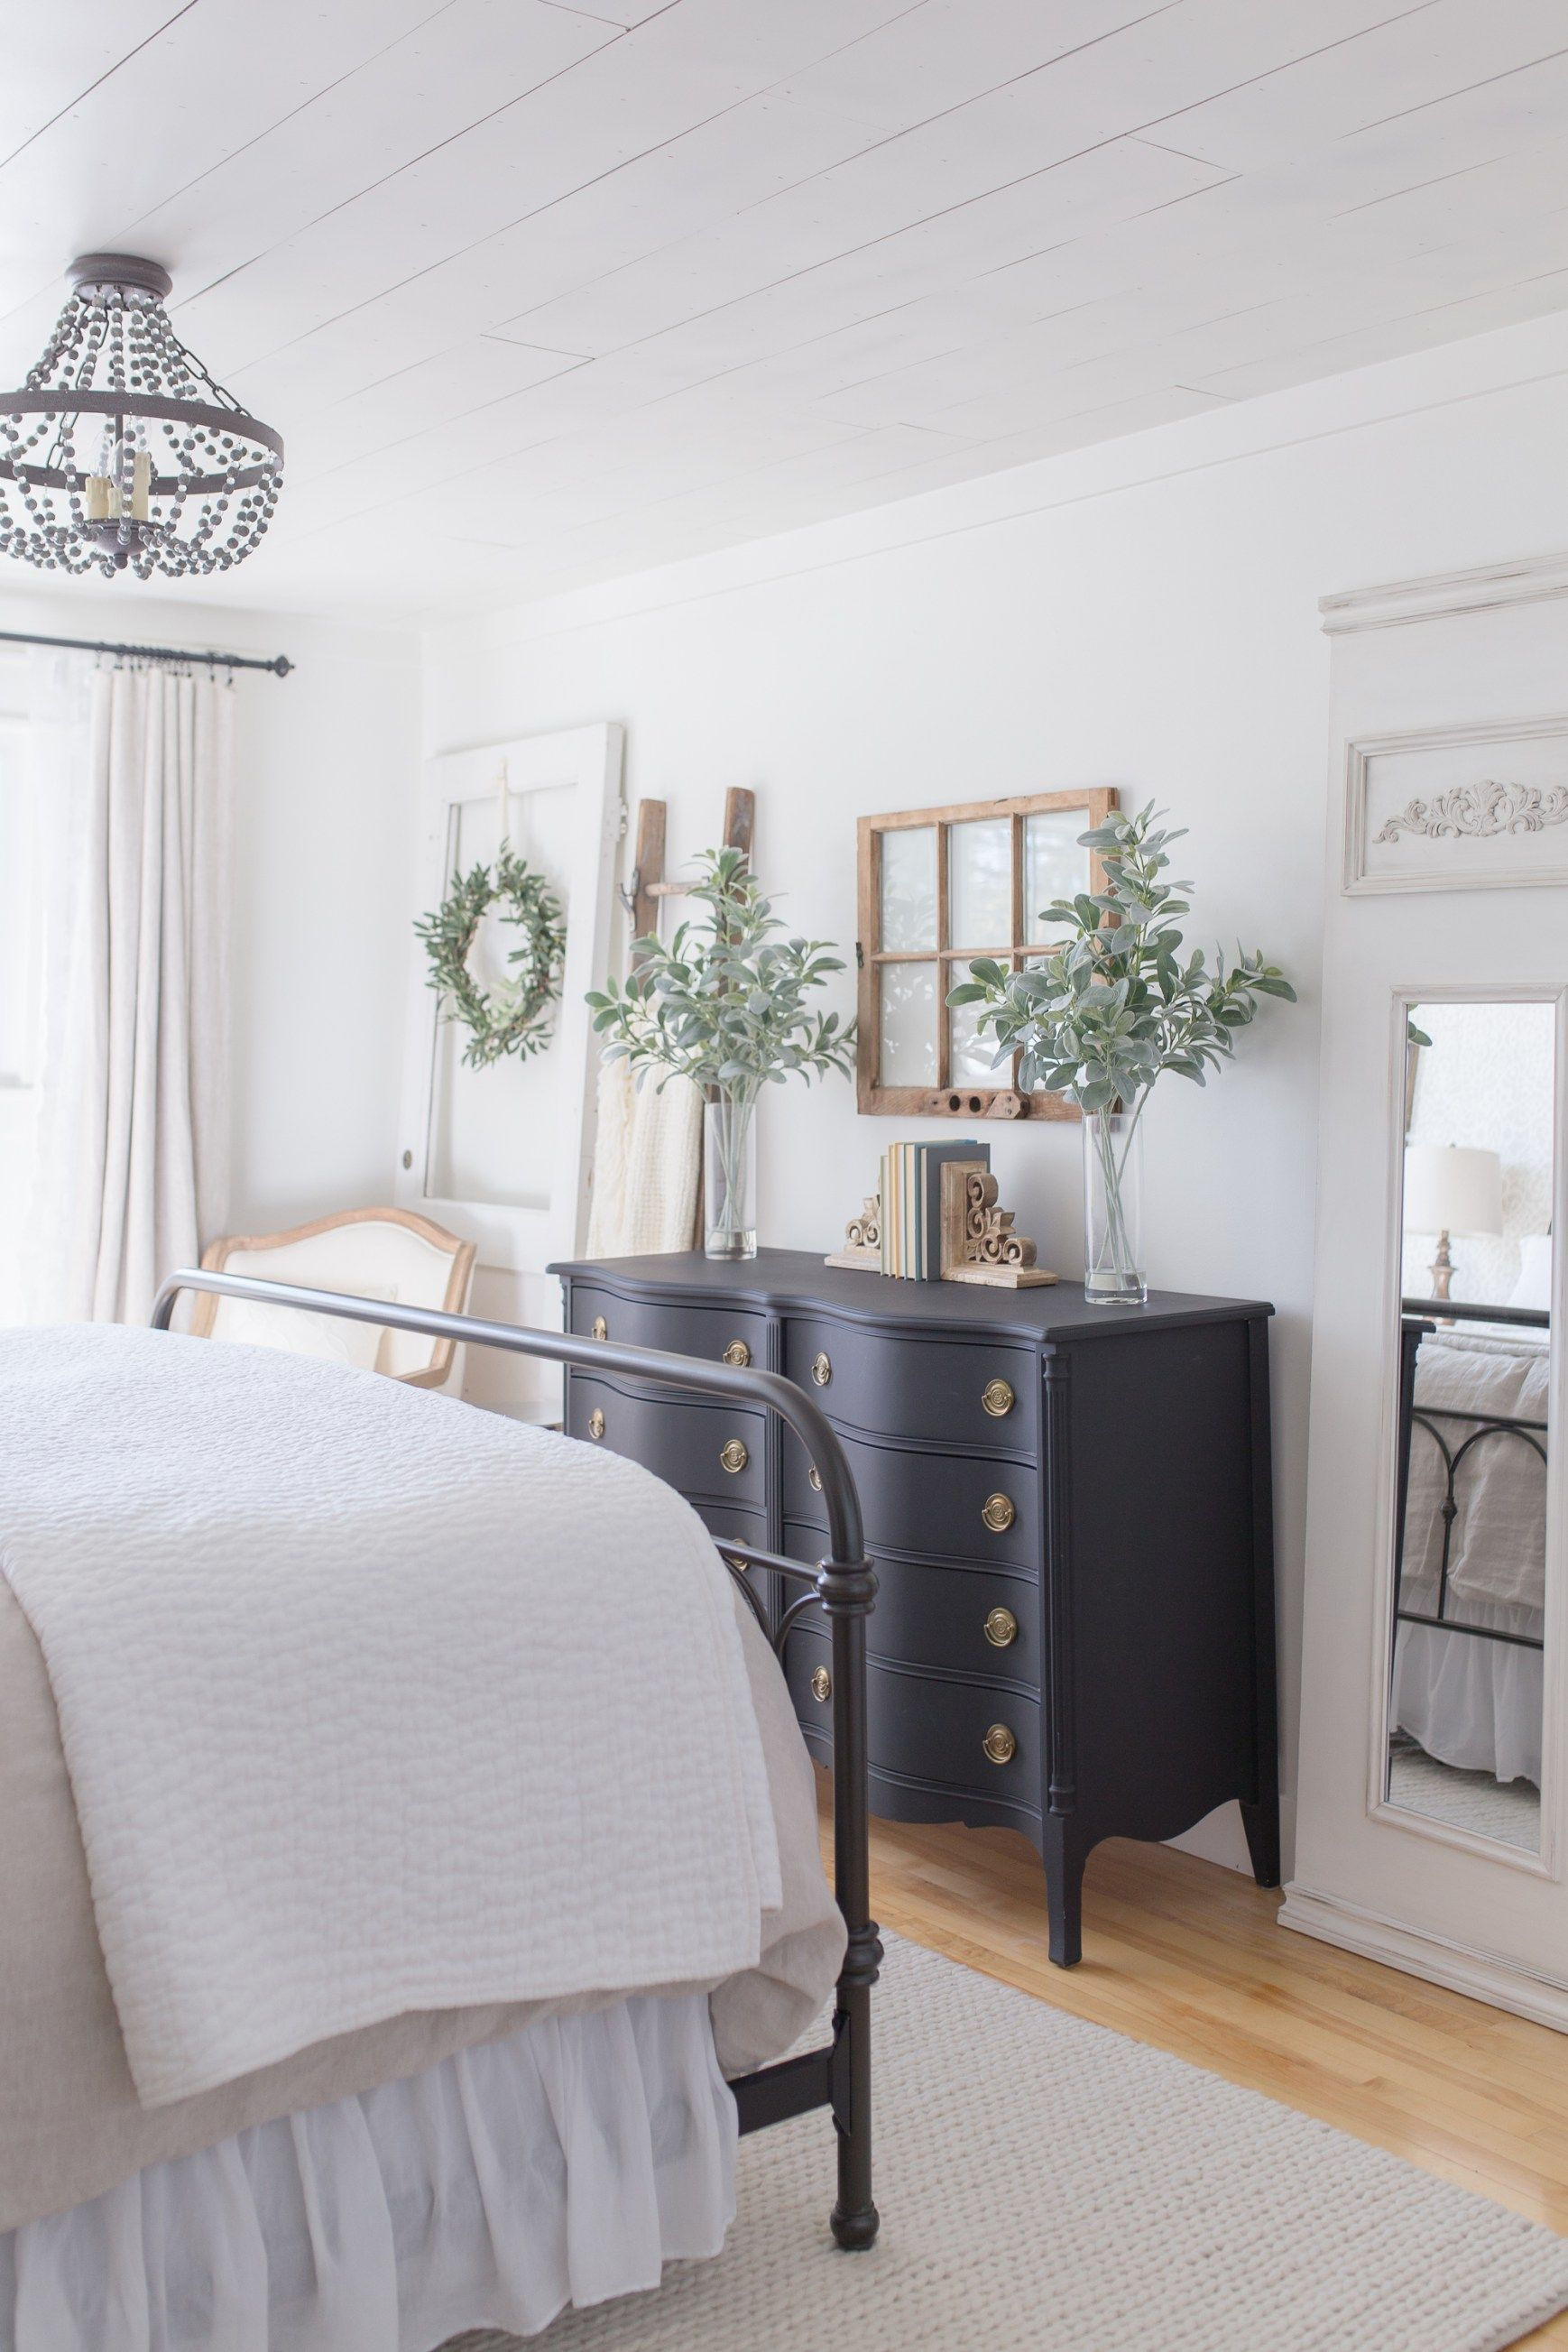 Cozy Living: Sunny Farmhouse Style Spring Bedroom Tour | Fresh ... on color for bedrooms, decorative pillows for bedrooms, design for bedrooms, organization for bedrooms, storage for bedrooms, diy for bedrooms, home decor for bedrooms, printables for bedrooms, window seats for bedrooms, decorative lights for bedrooms, silk flowers for bedrooms, small spaces for bedrooms, furniture for bedrooms, christmas for bedrooms, window treatments for bedrooms, halloween for bedrooms, art for bedrooms,